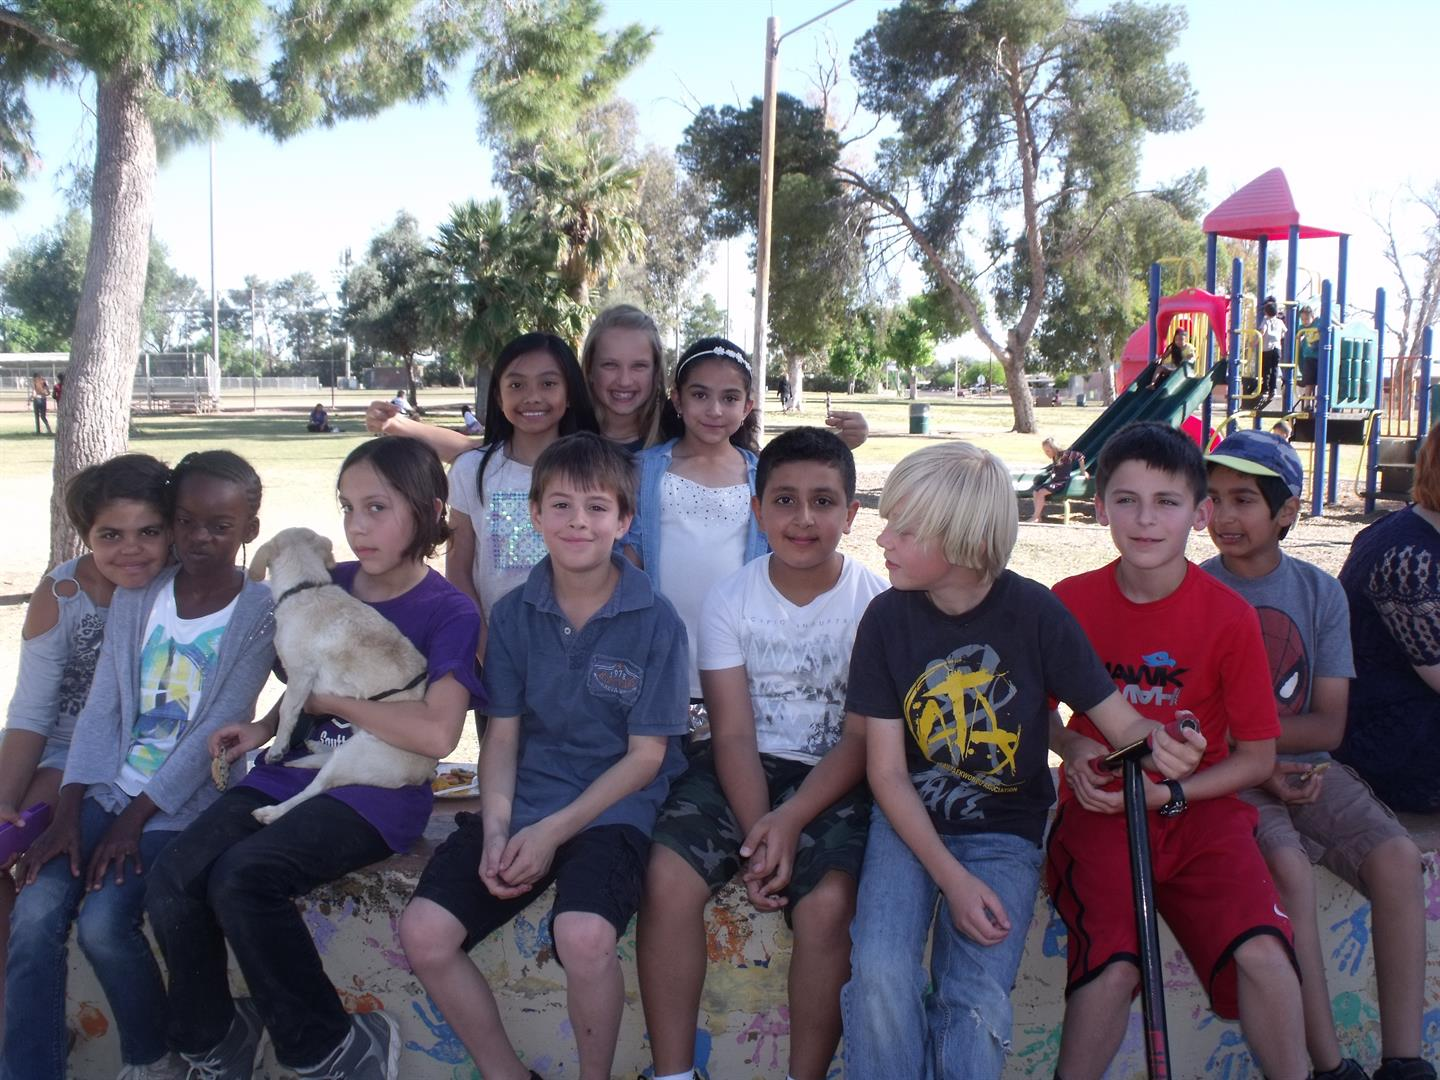 Children posing for a group photo at a playground